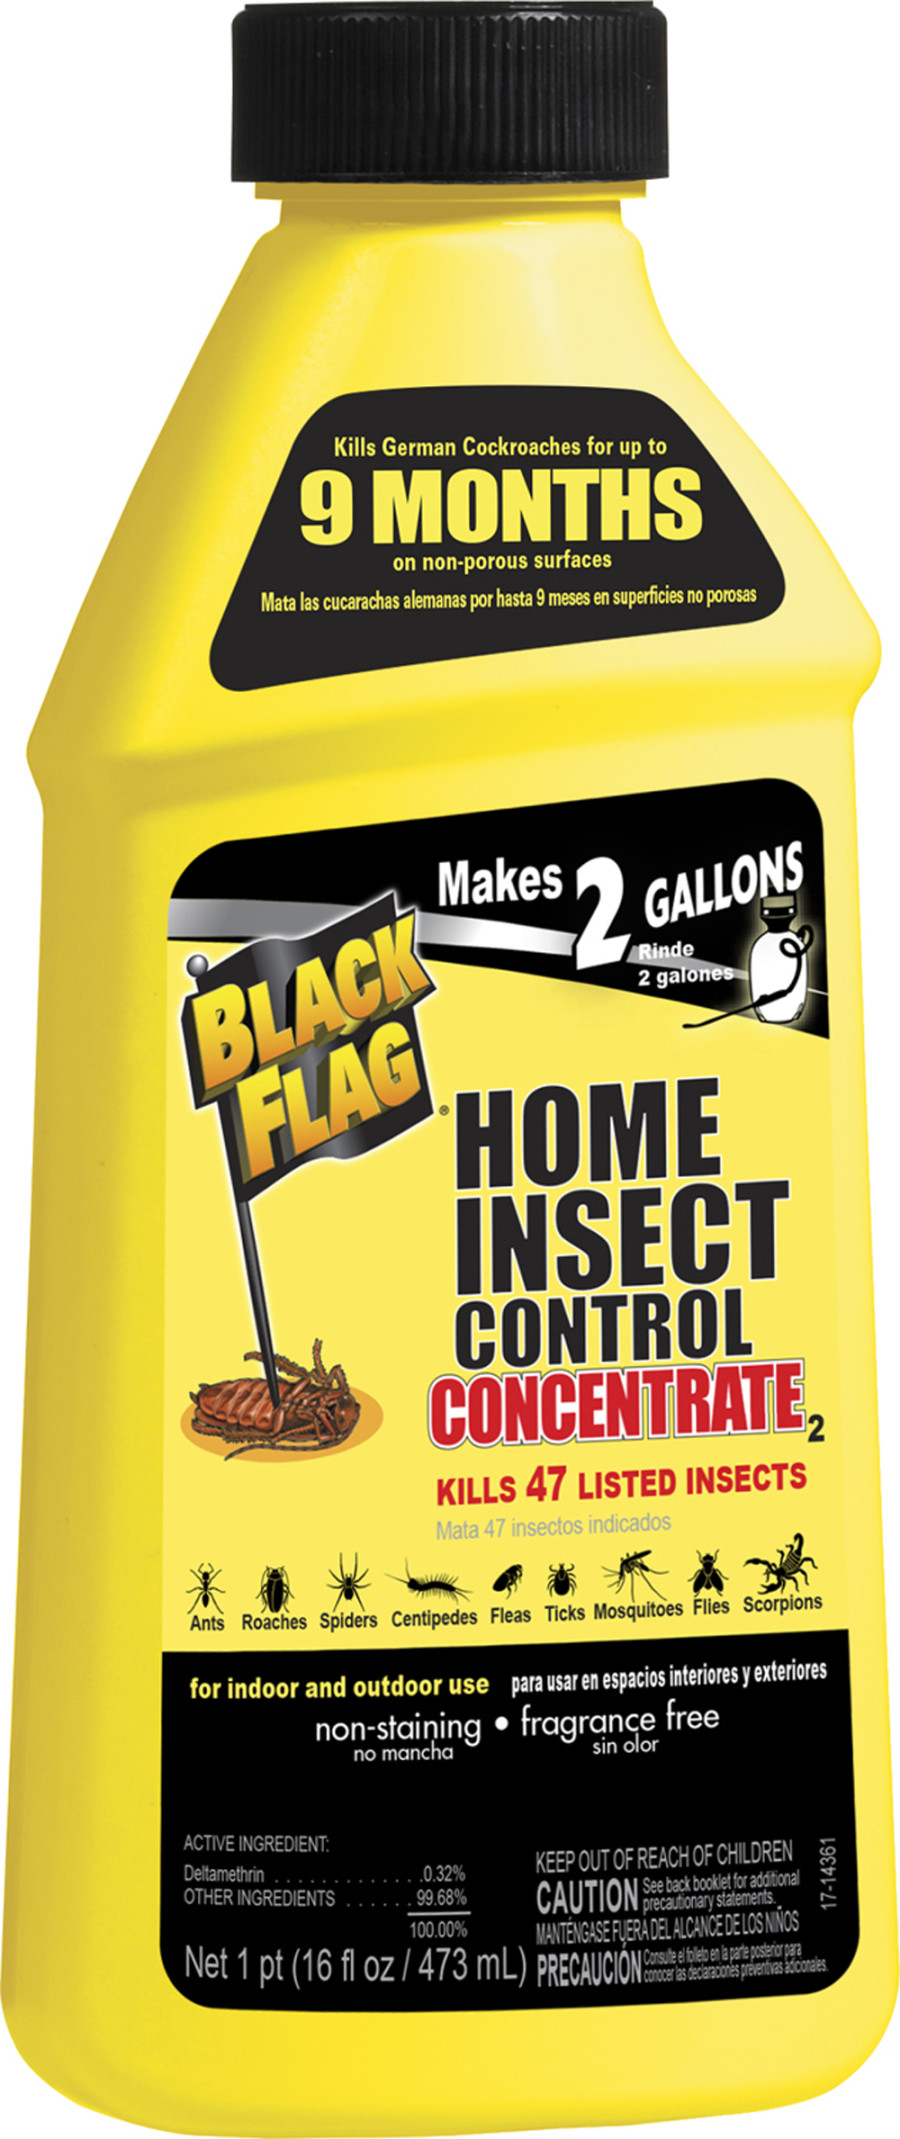 Black Flag Home Insect Control Concentrate 6ea/16 oz